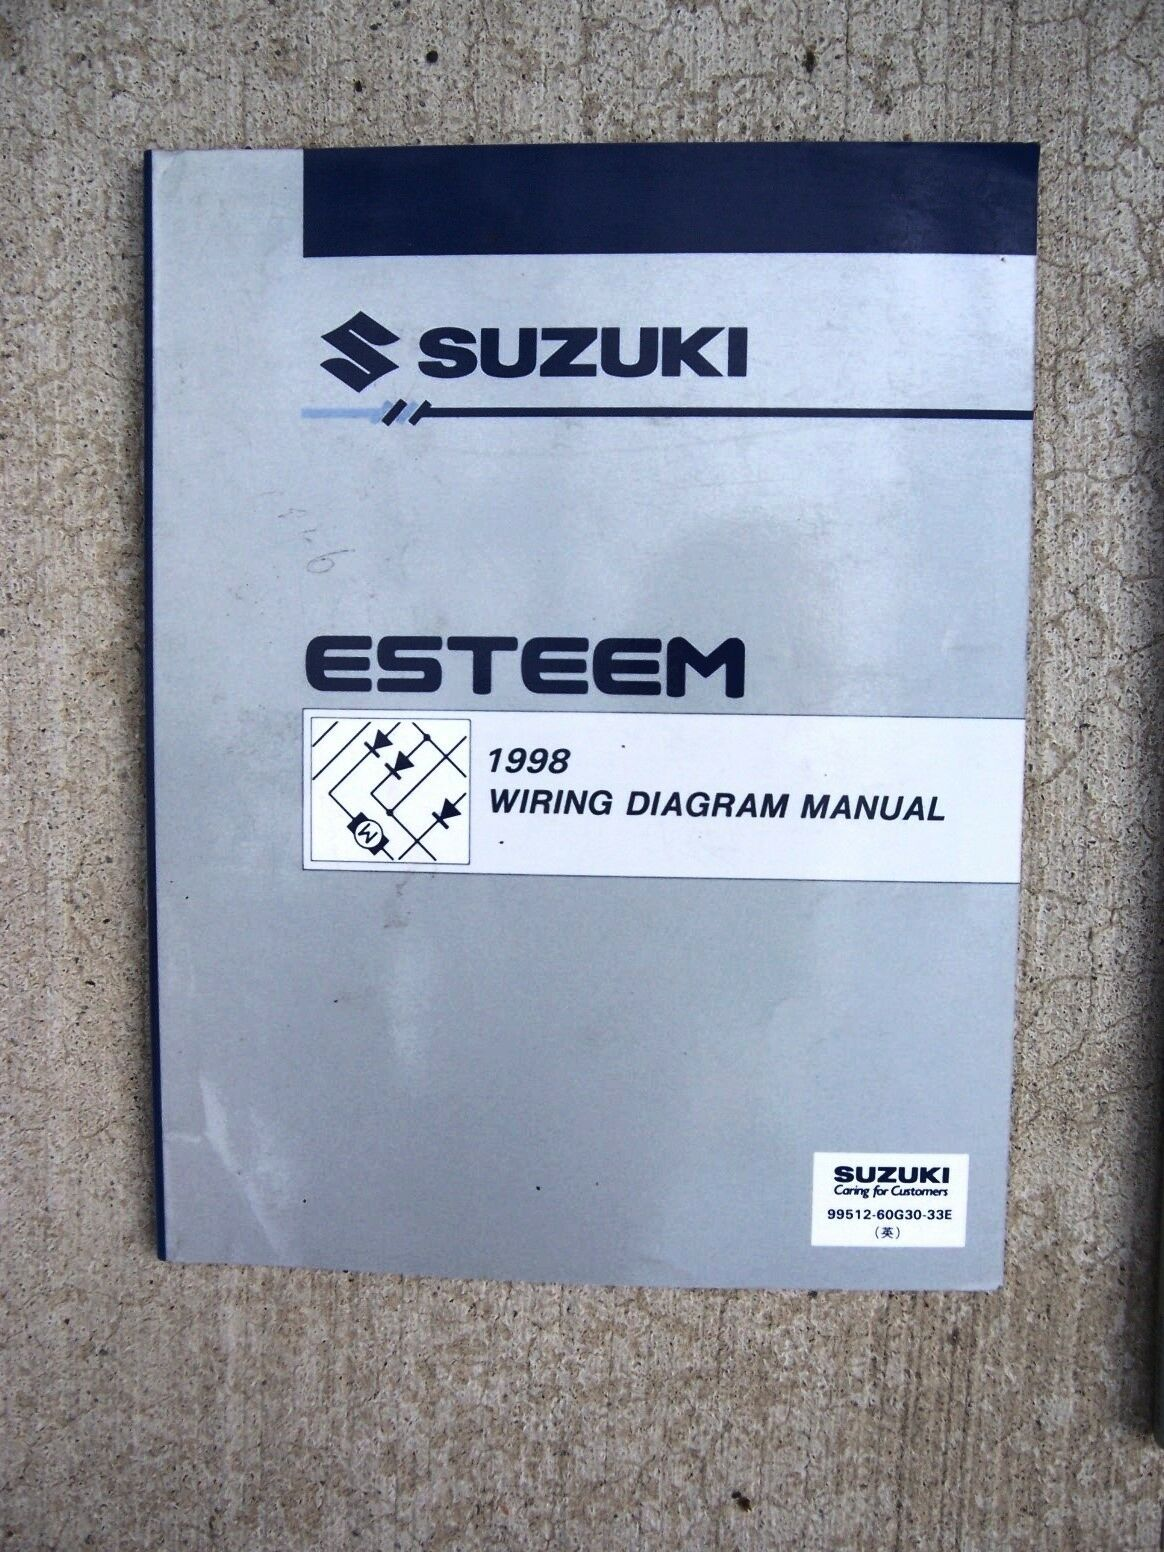 1998 Suzuki Esteem Wiring Diagrams Schematics Auto Diagram Manual Connectors Ground Rh Picclick Com Repair